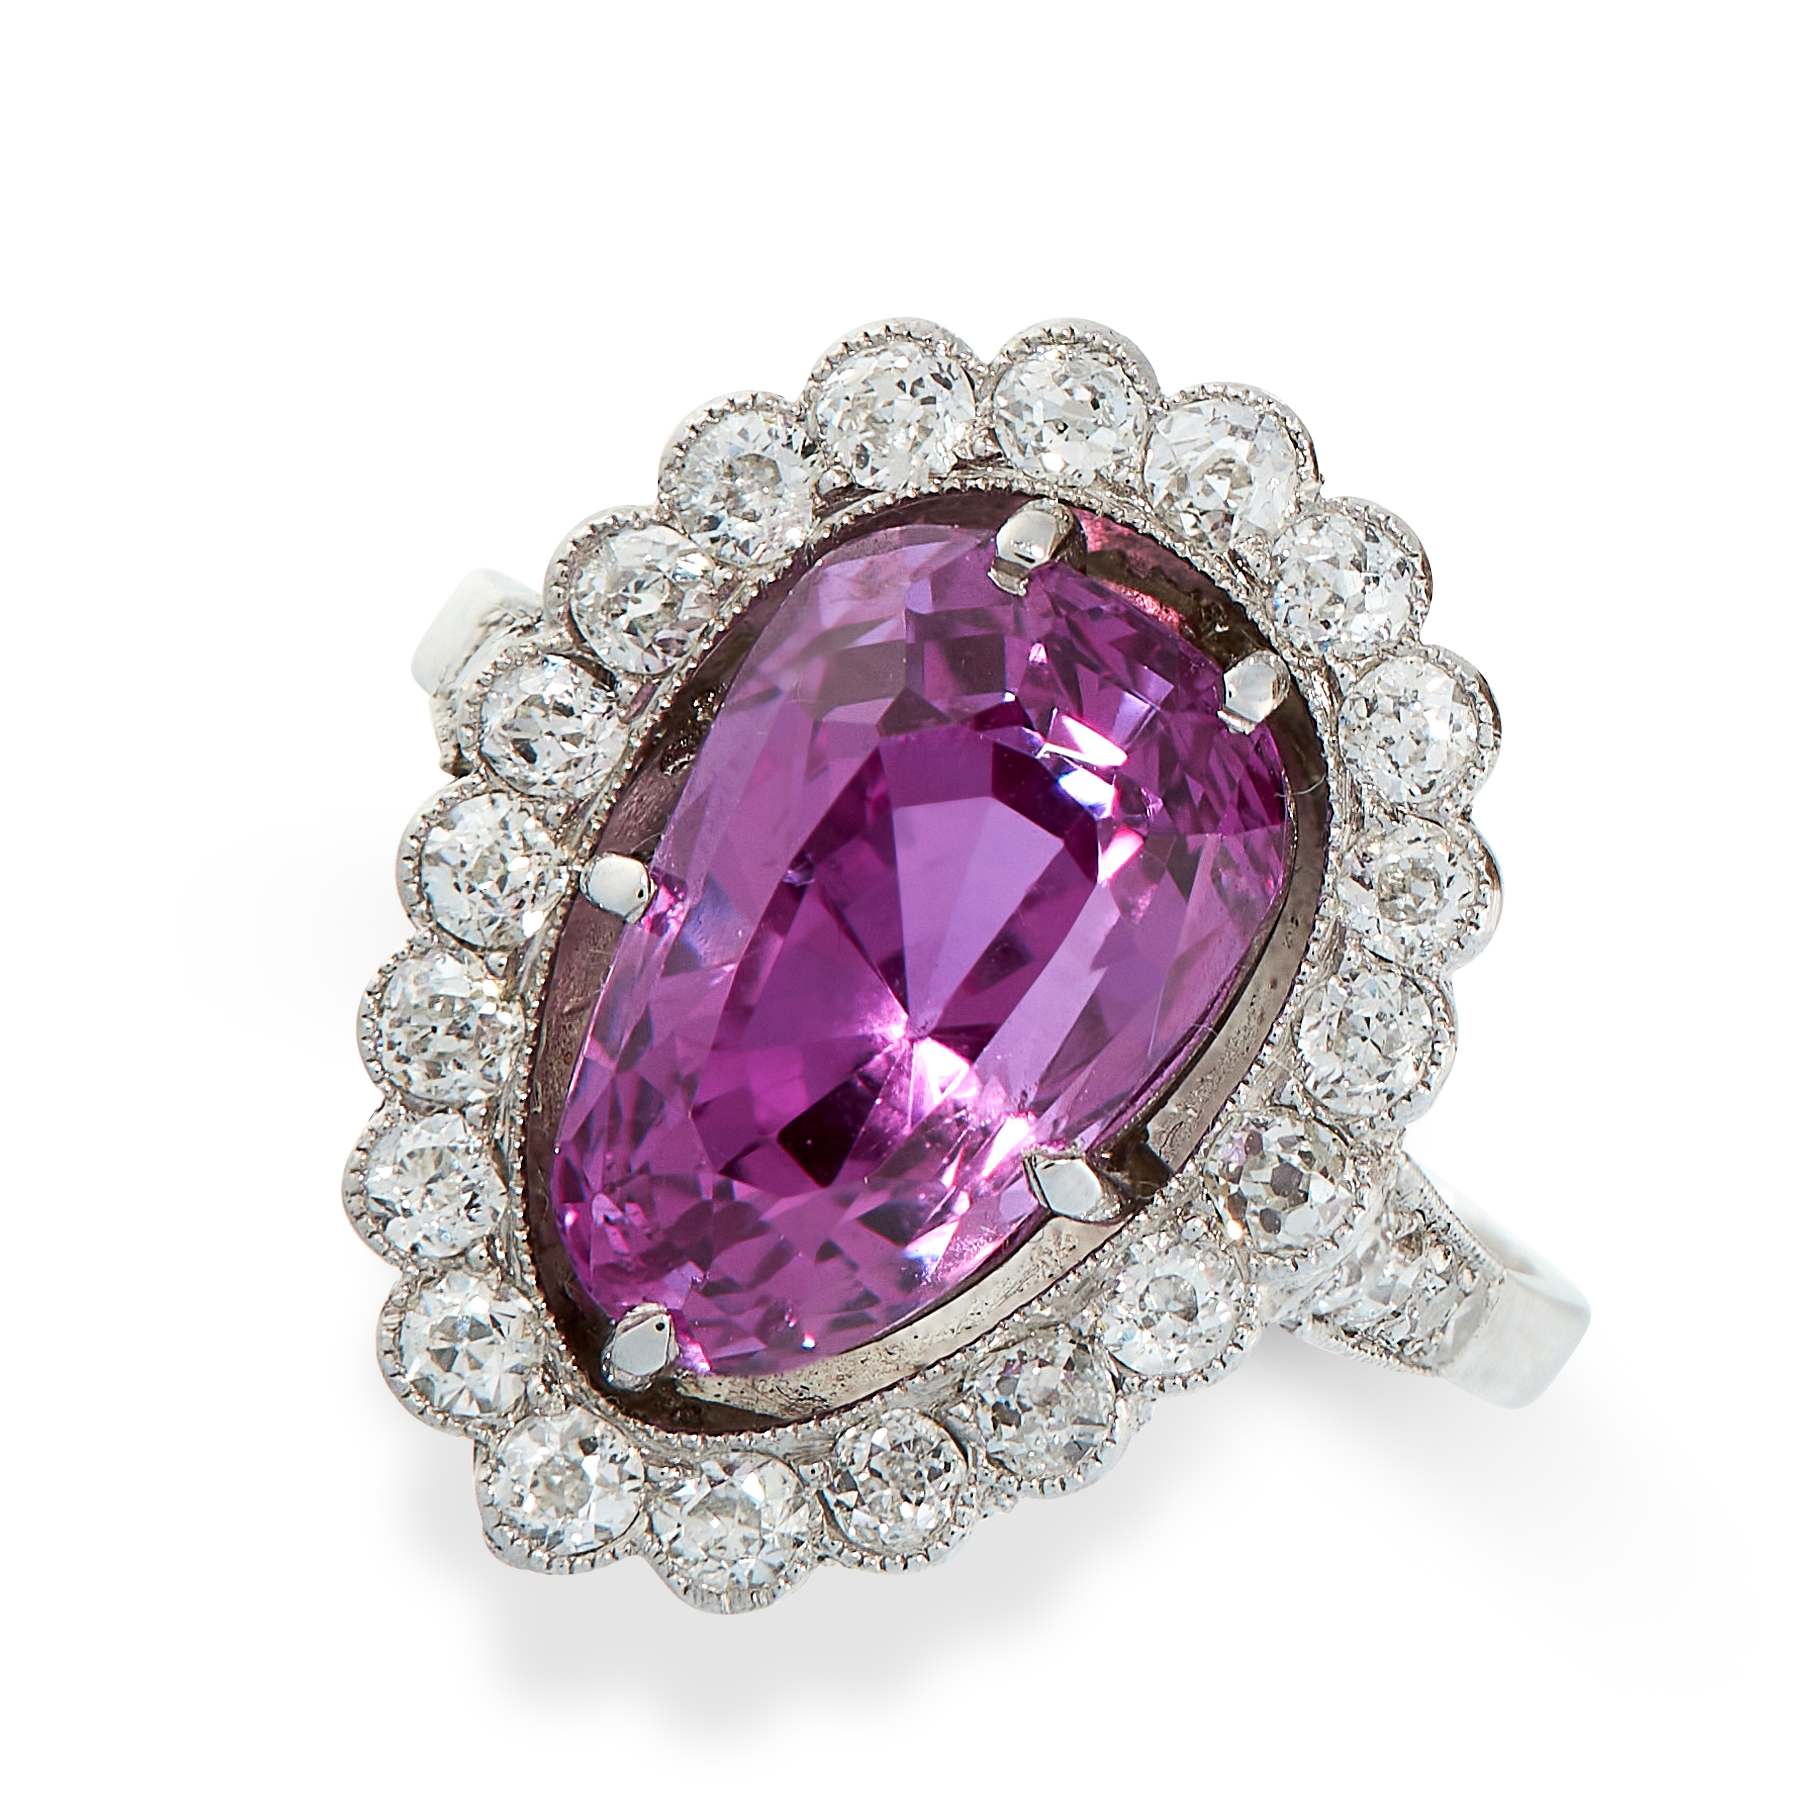 CEYLON NO HEAT PINK SAPPHIRE AND DIAMOND RING in cluster form, set with a pear cut pink sapphire